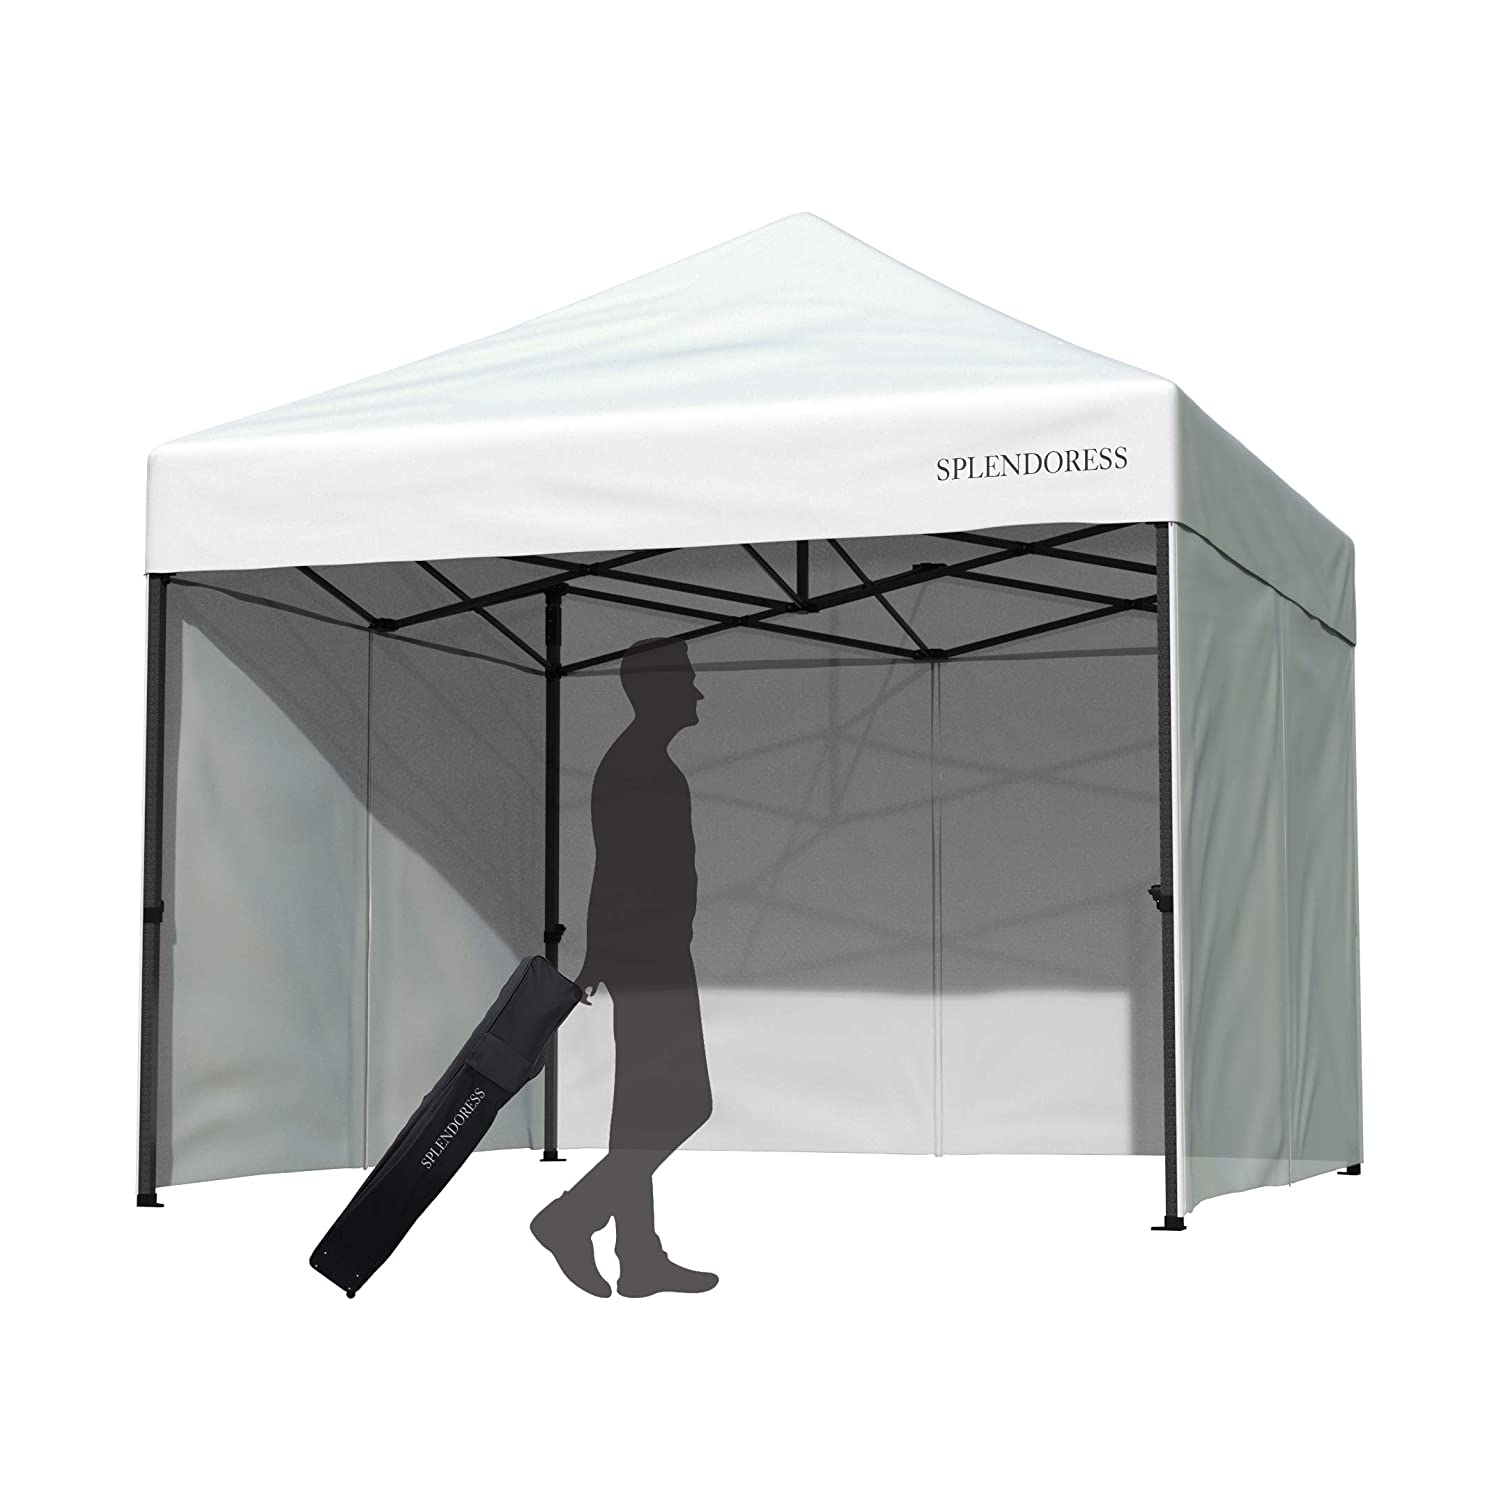 Splendoress Instant Pop Up Canopy Tent 10×10 – Portable Waterproof White Canopy – Heavy Duty Folding 10 x 10 Canopy Tent – 4 Removable Zipper End Side Walls and Roller Bag